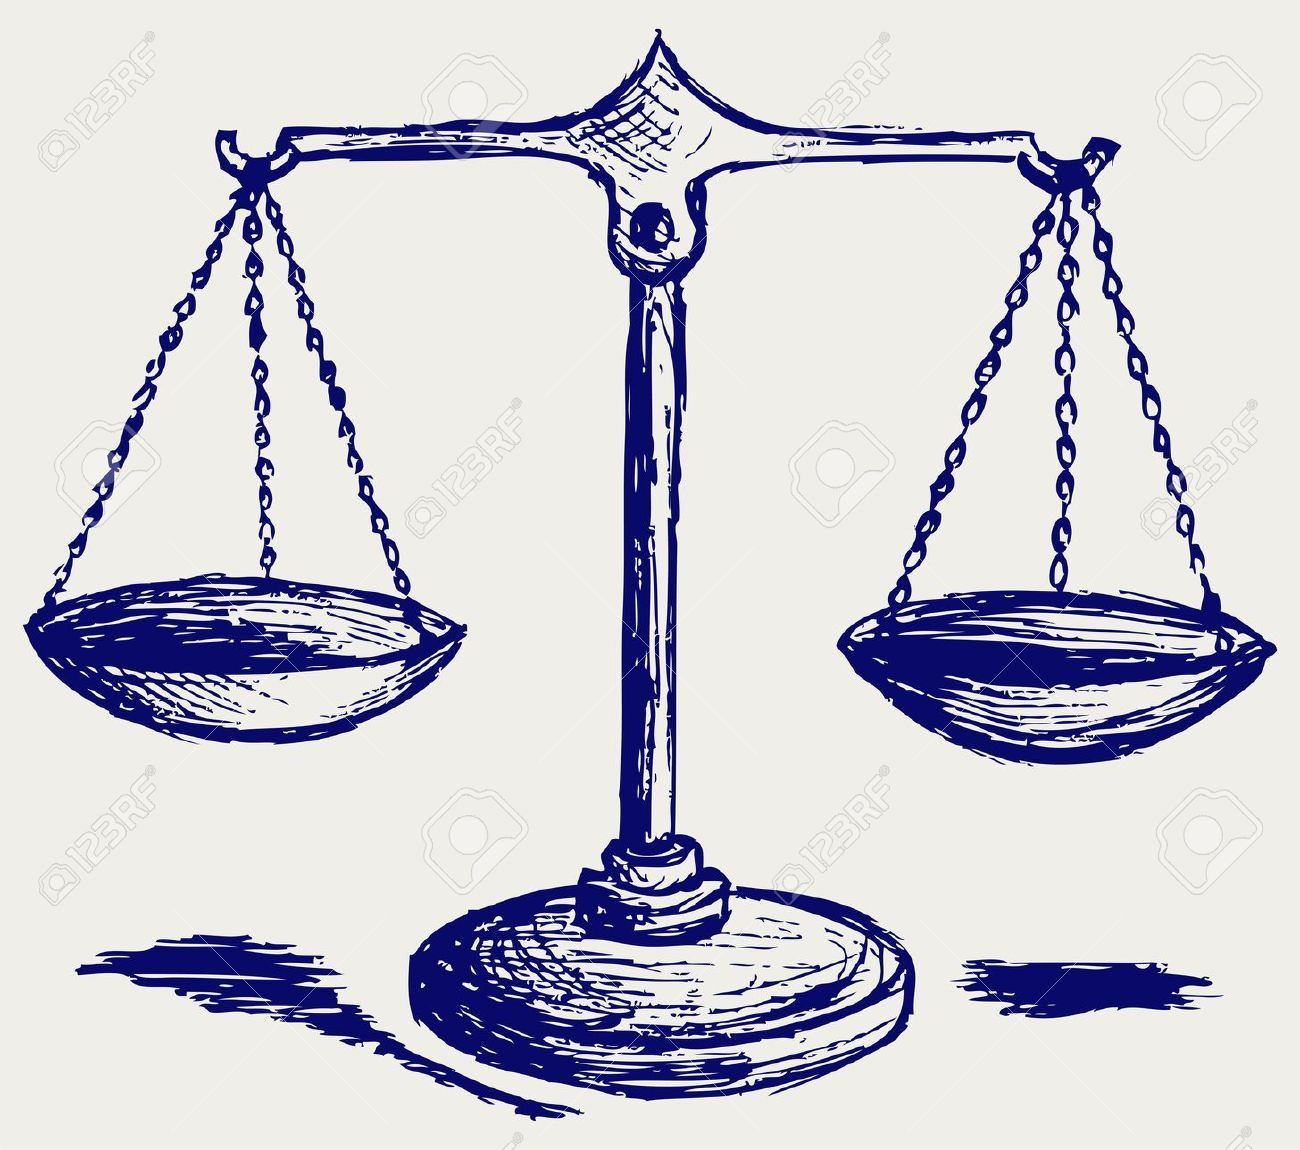 Scales clipart supreme law land. Justice scale drawing google